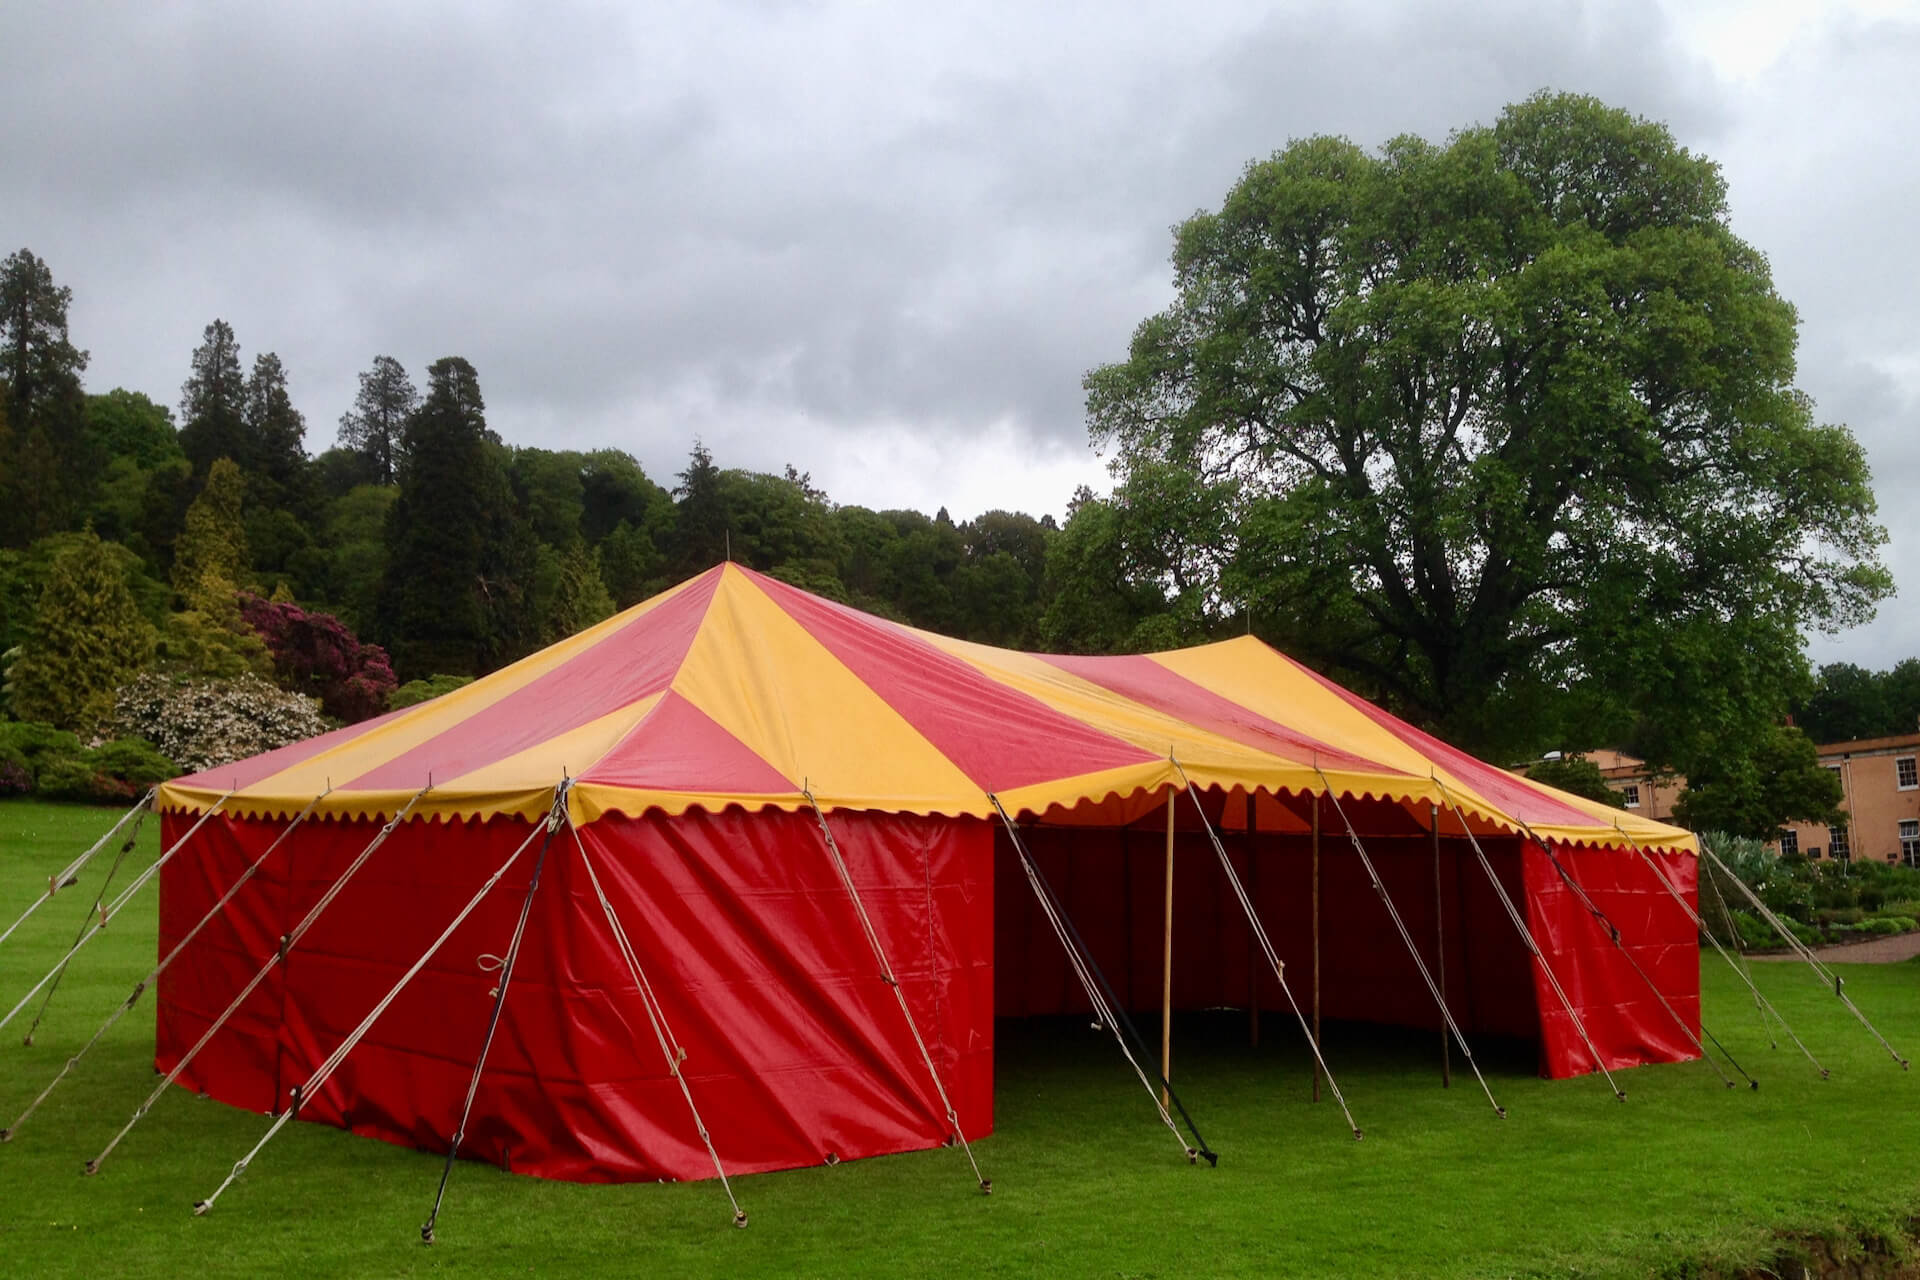 12m x 6m rectangular red and yellow tent hire